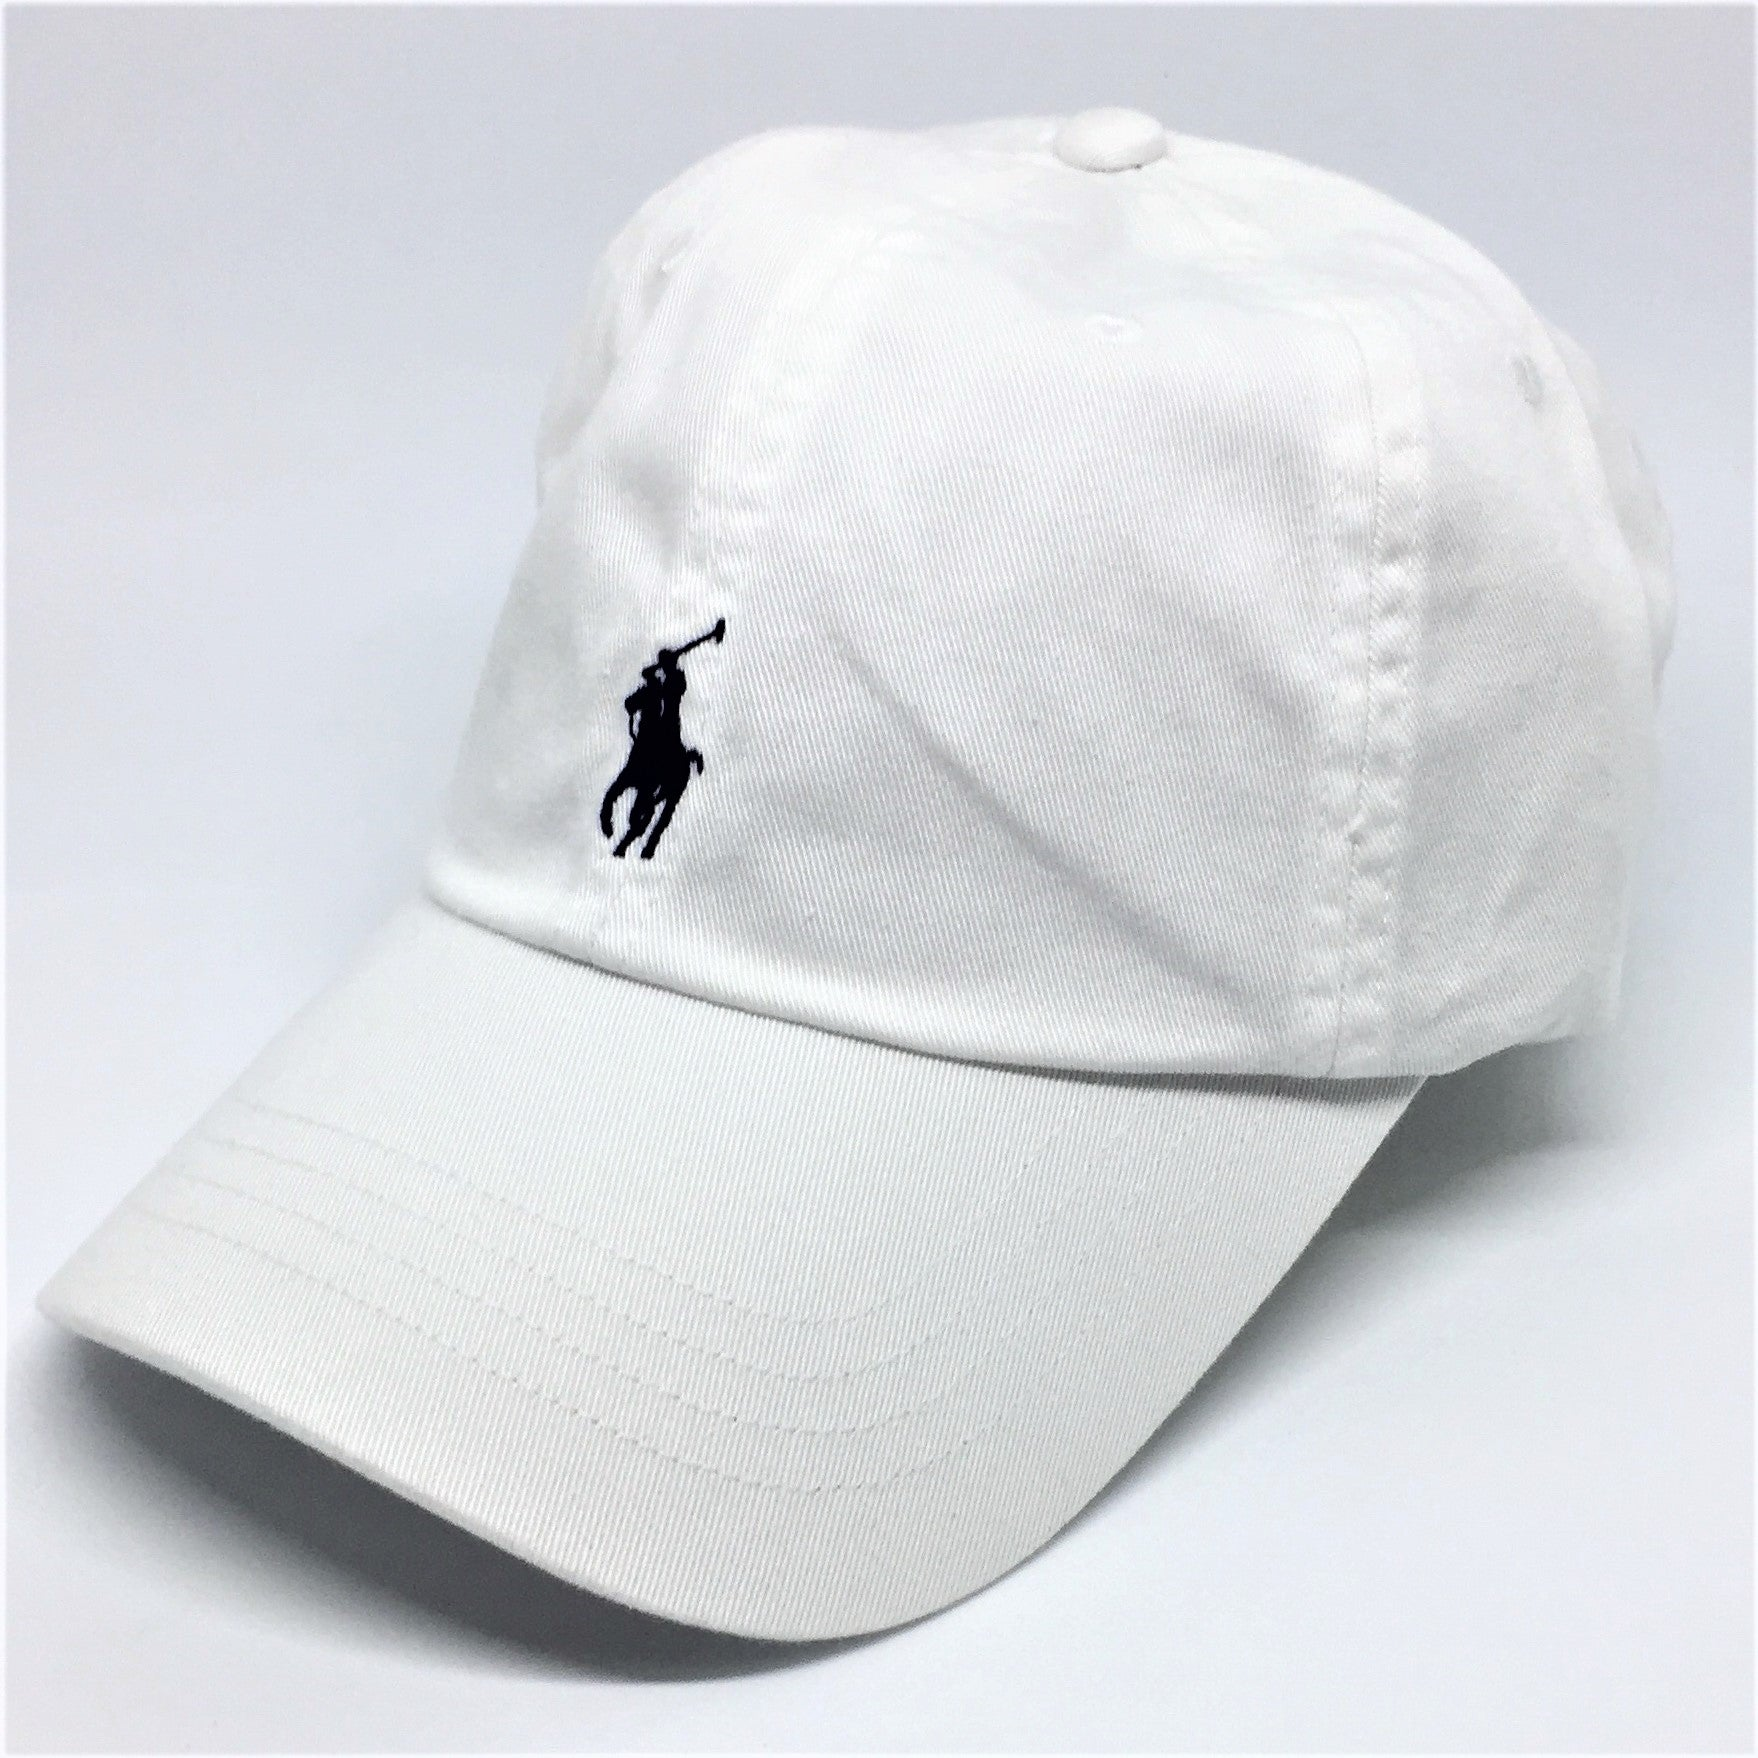 5fc8237388b Polo Ralph Lauren Baseball Cap White - Style Up